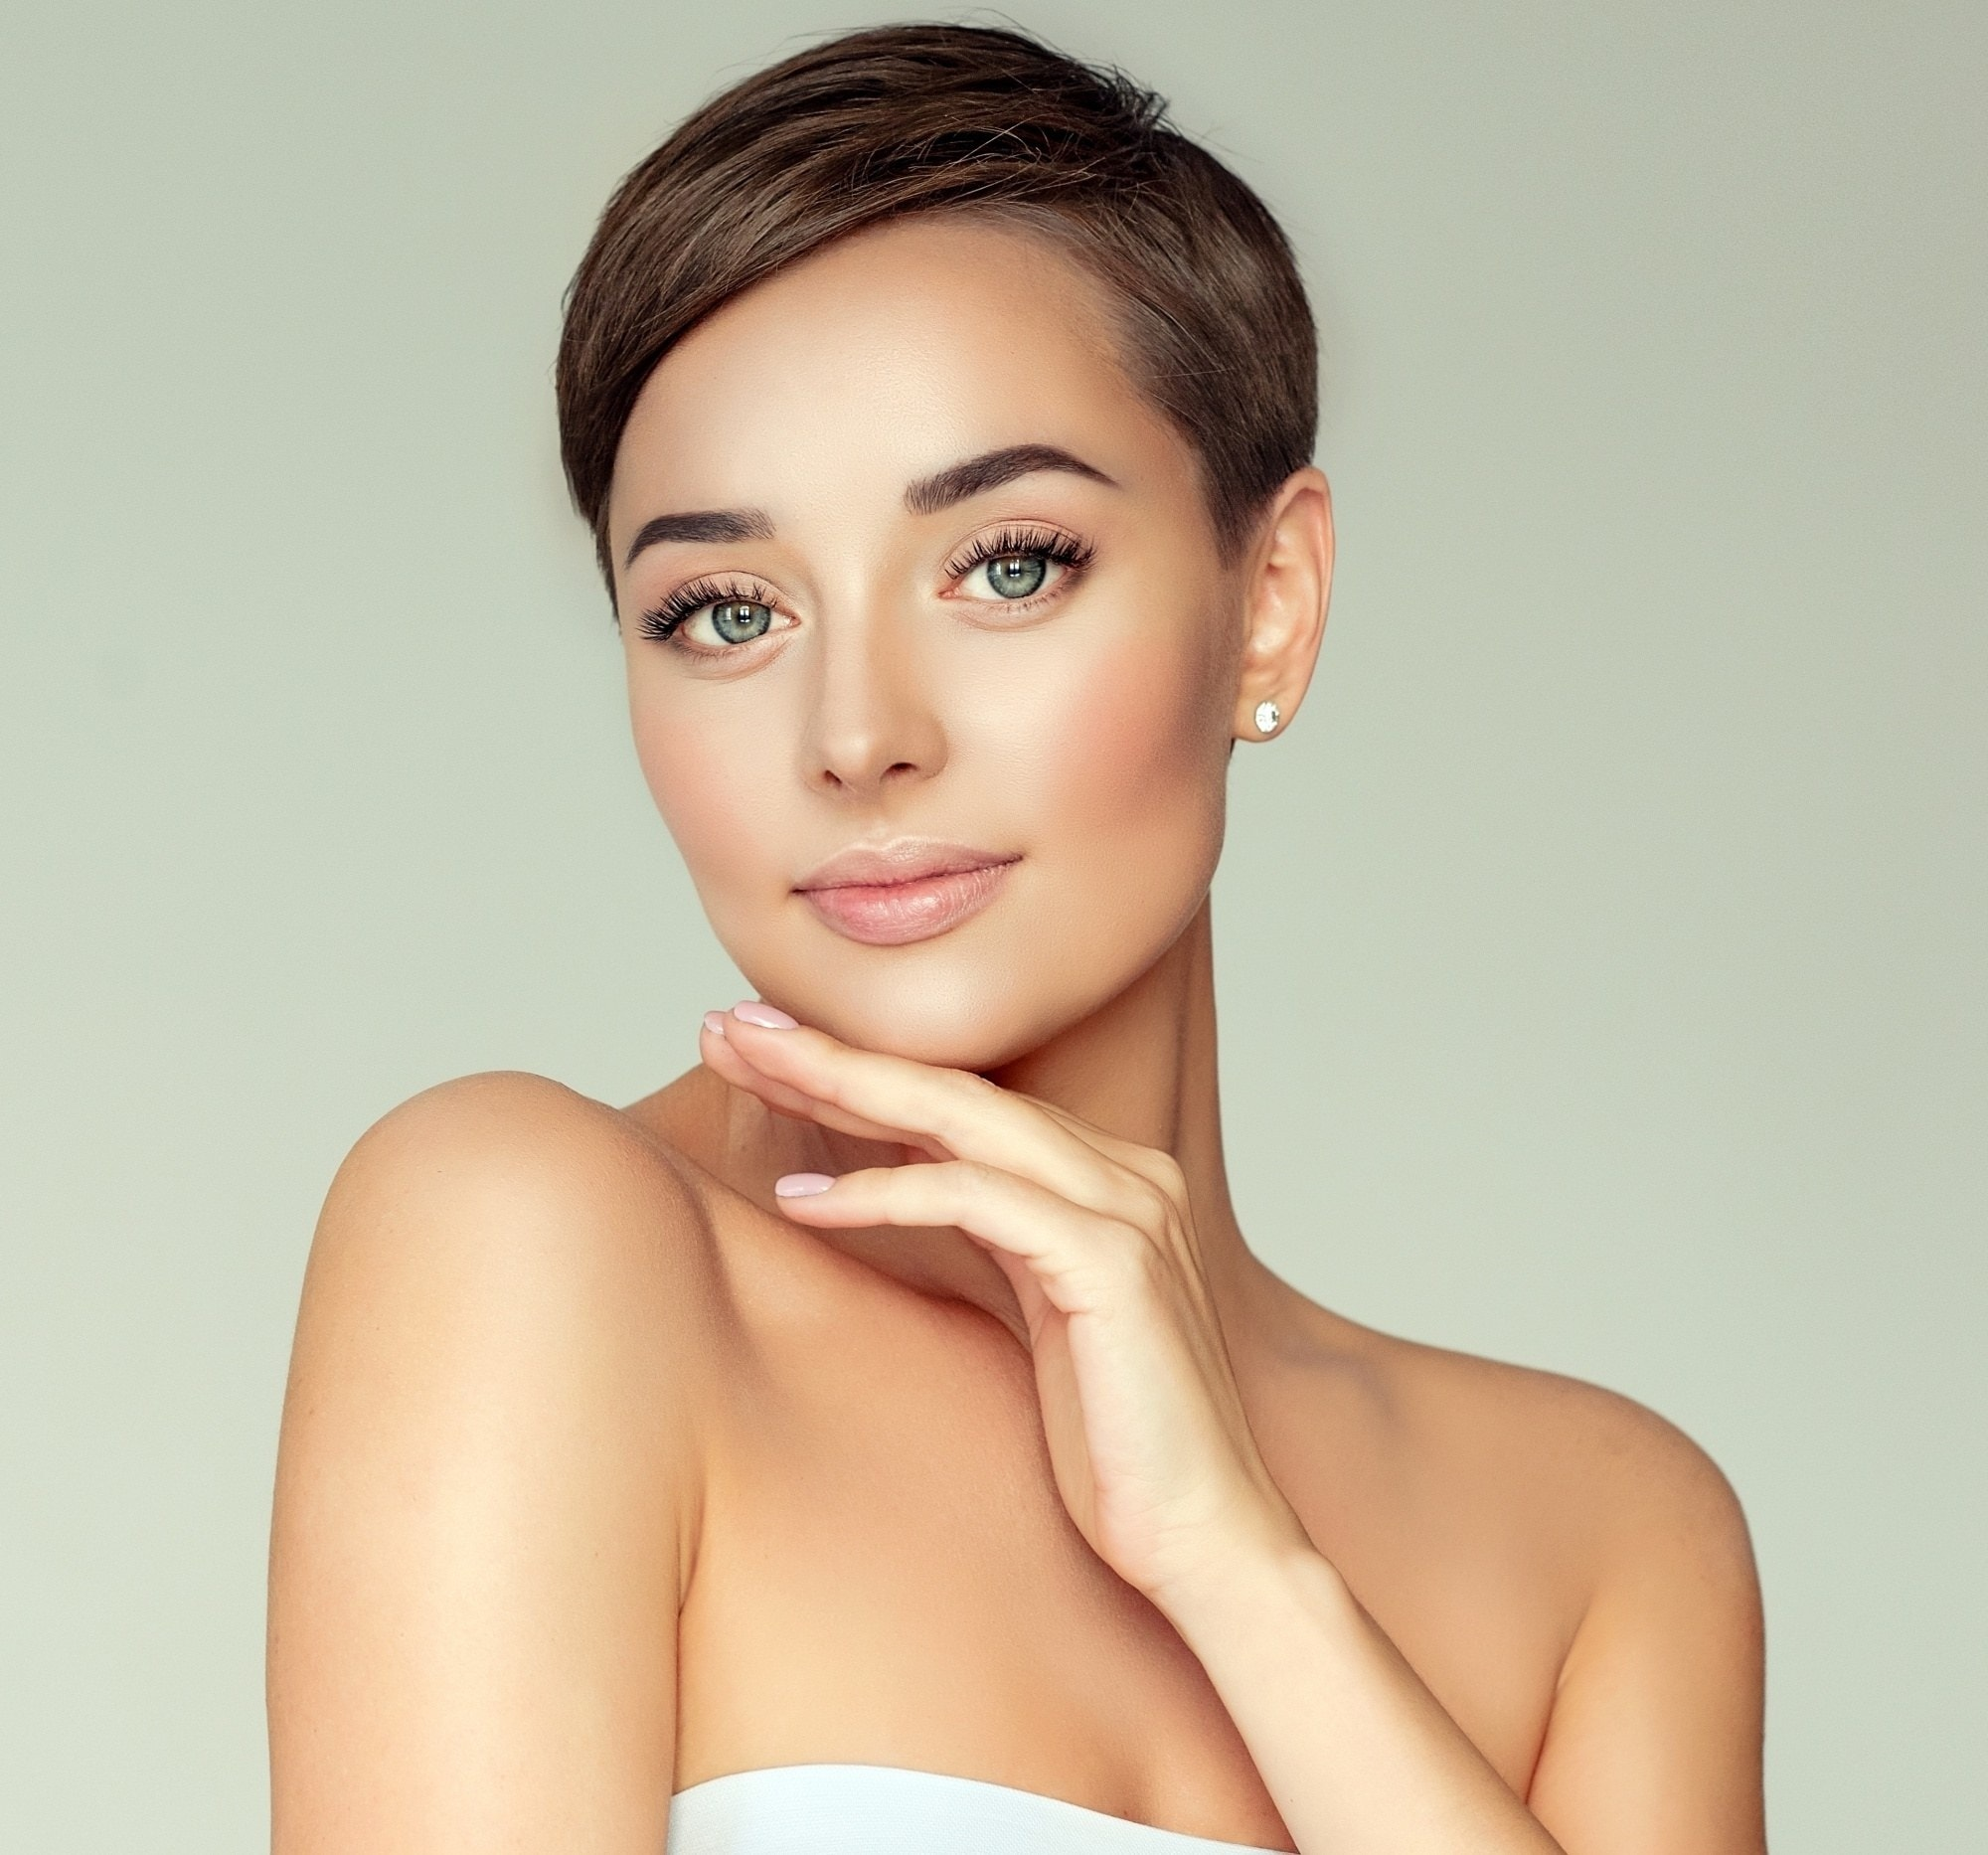 Short hairstyles for long faces: Closeup shot of a woman with short dark hair wearing a white tube top